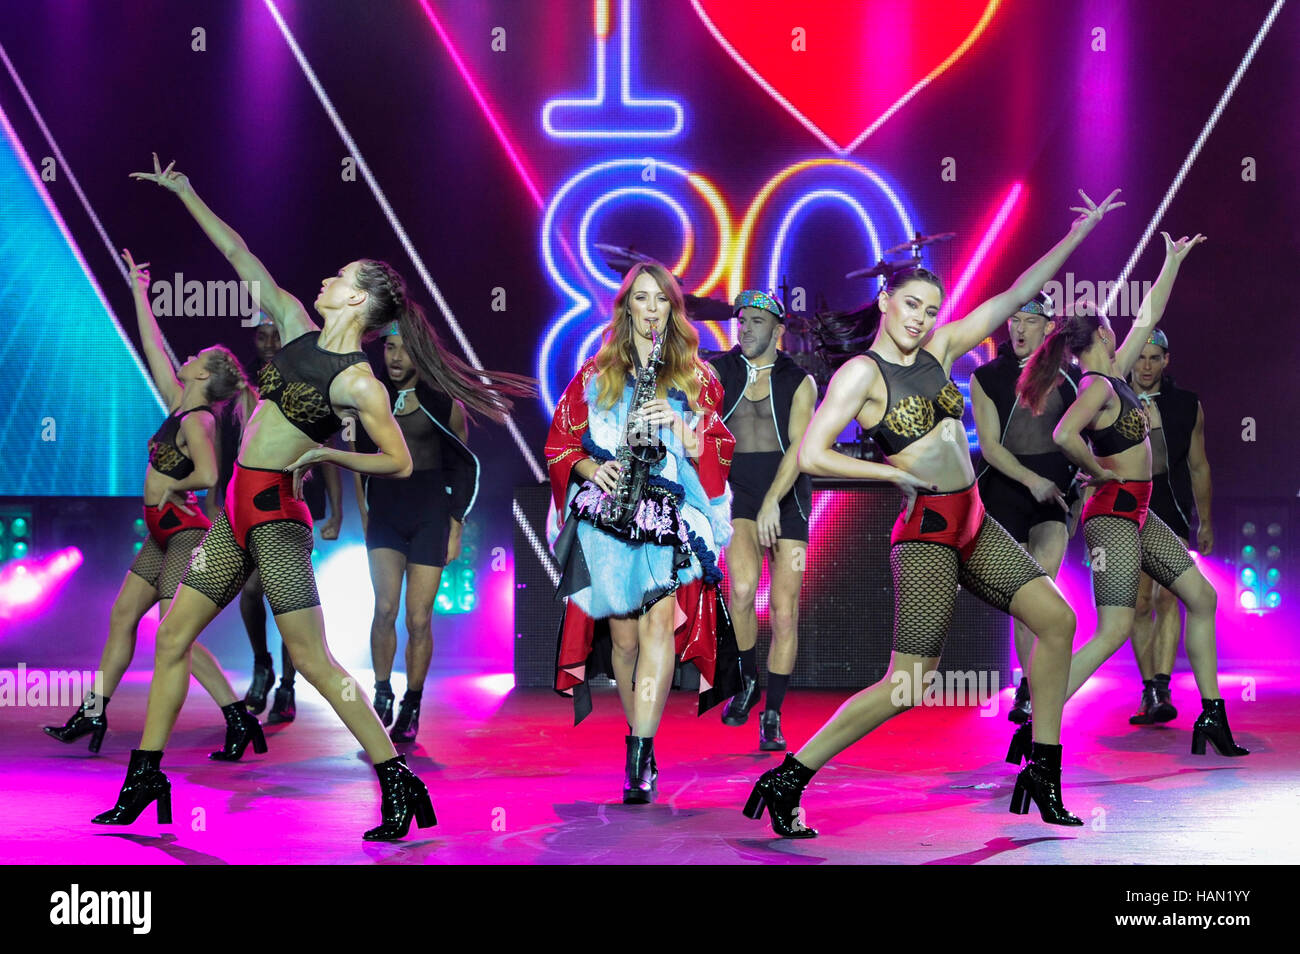 The Clothes Show 2016. Dancers perform during the Rock The Runway themed Alcatel Fashion Theatre, The Clothes Show, - Stock Image